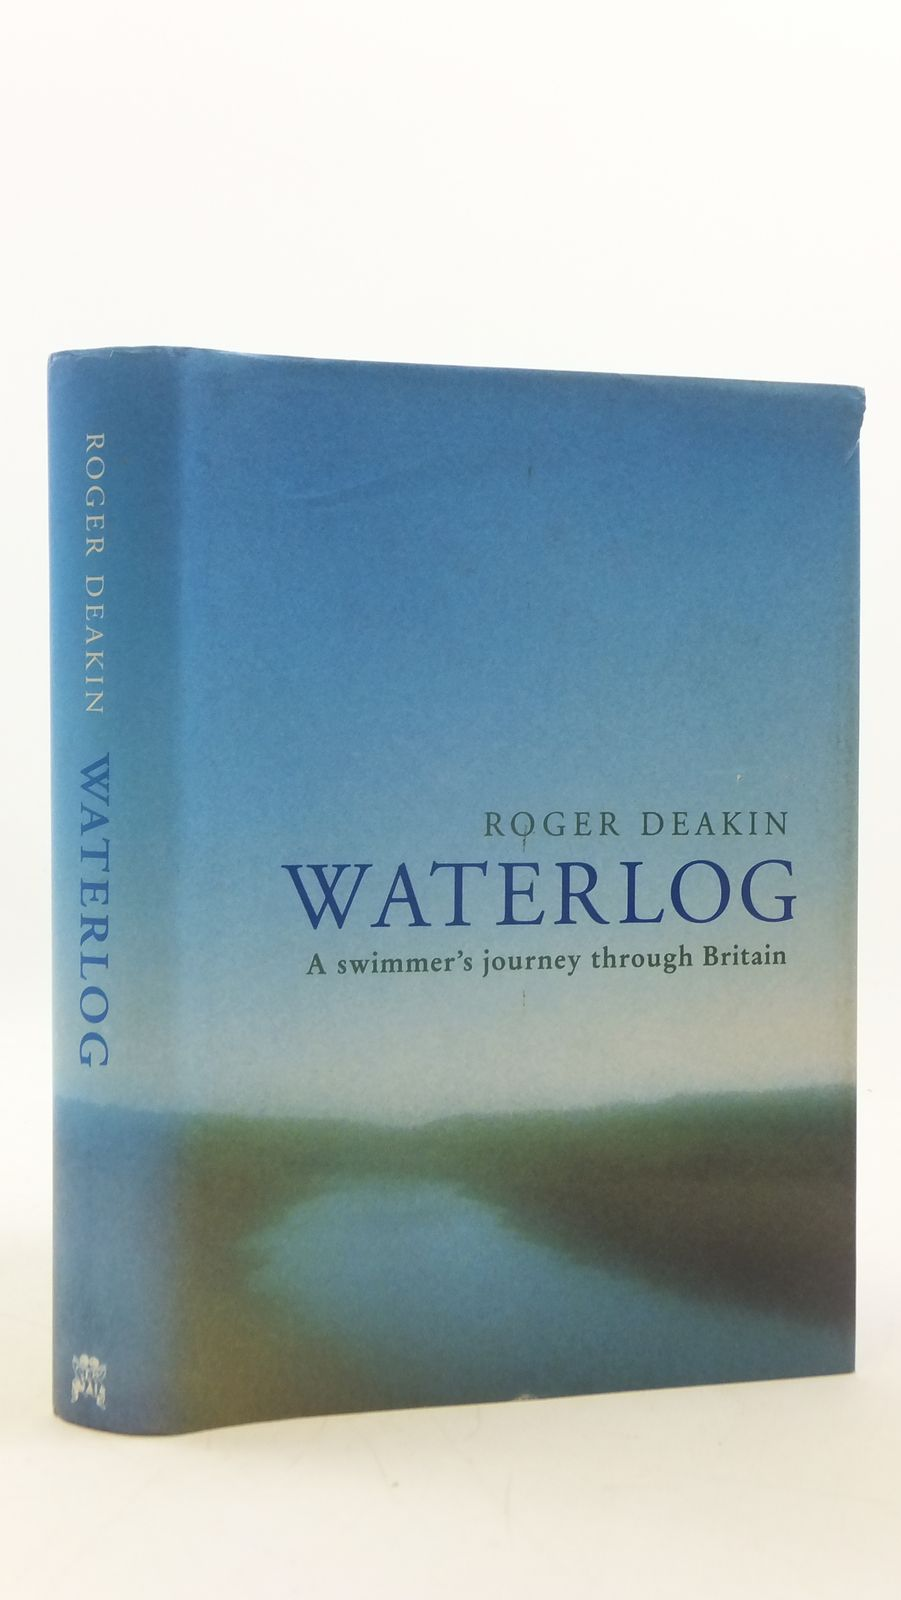 Photo of WATERLOG A SWIMMER'S JOURNEY THROUGH BRITAIN written by Deakin, Roger published by Chatto & Windus (STOCK CODE: 2111631)  for sale by Stella & Rose's Books